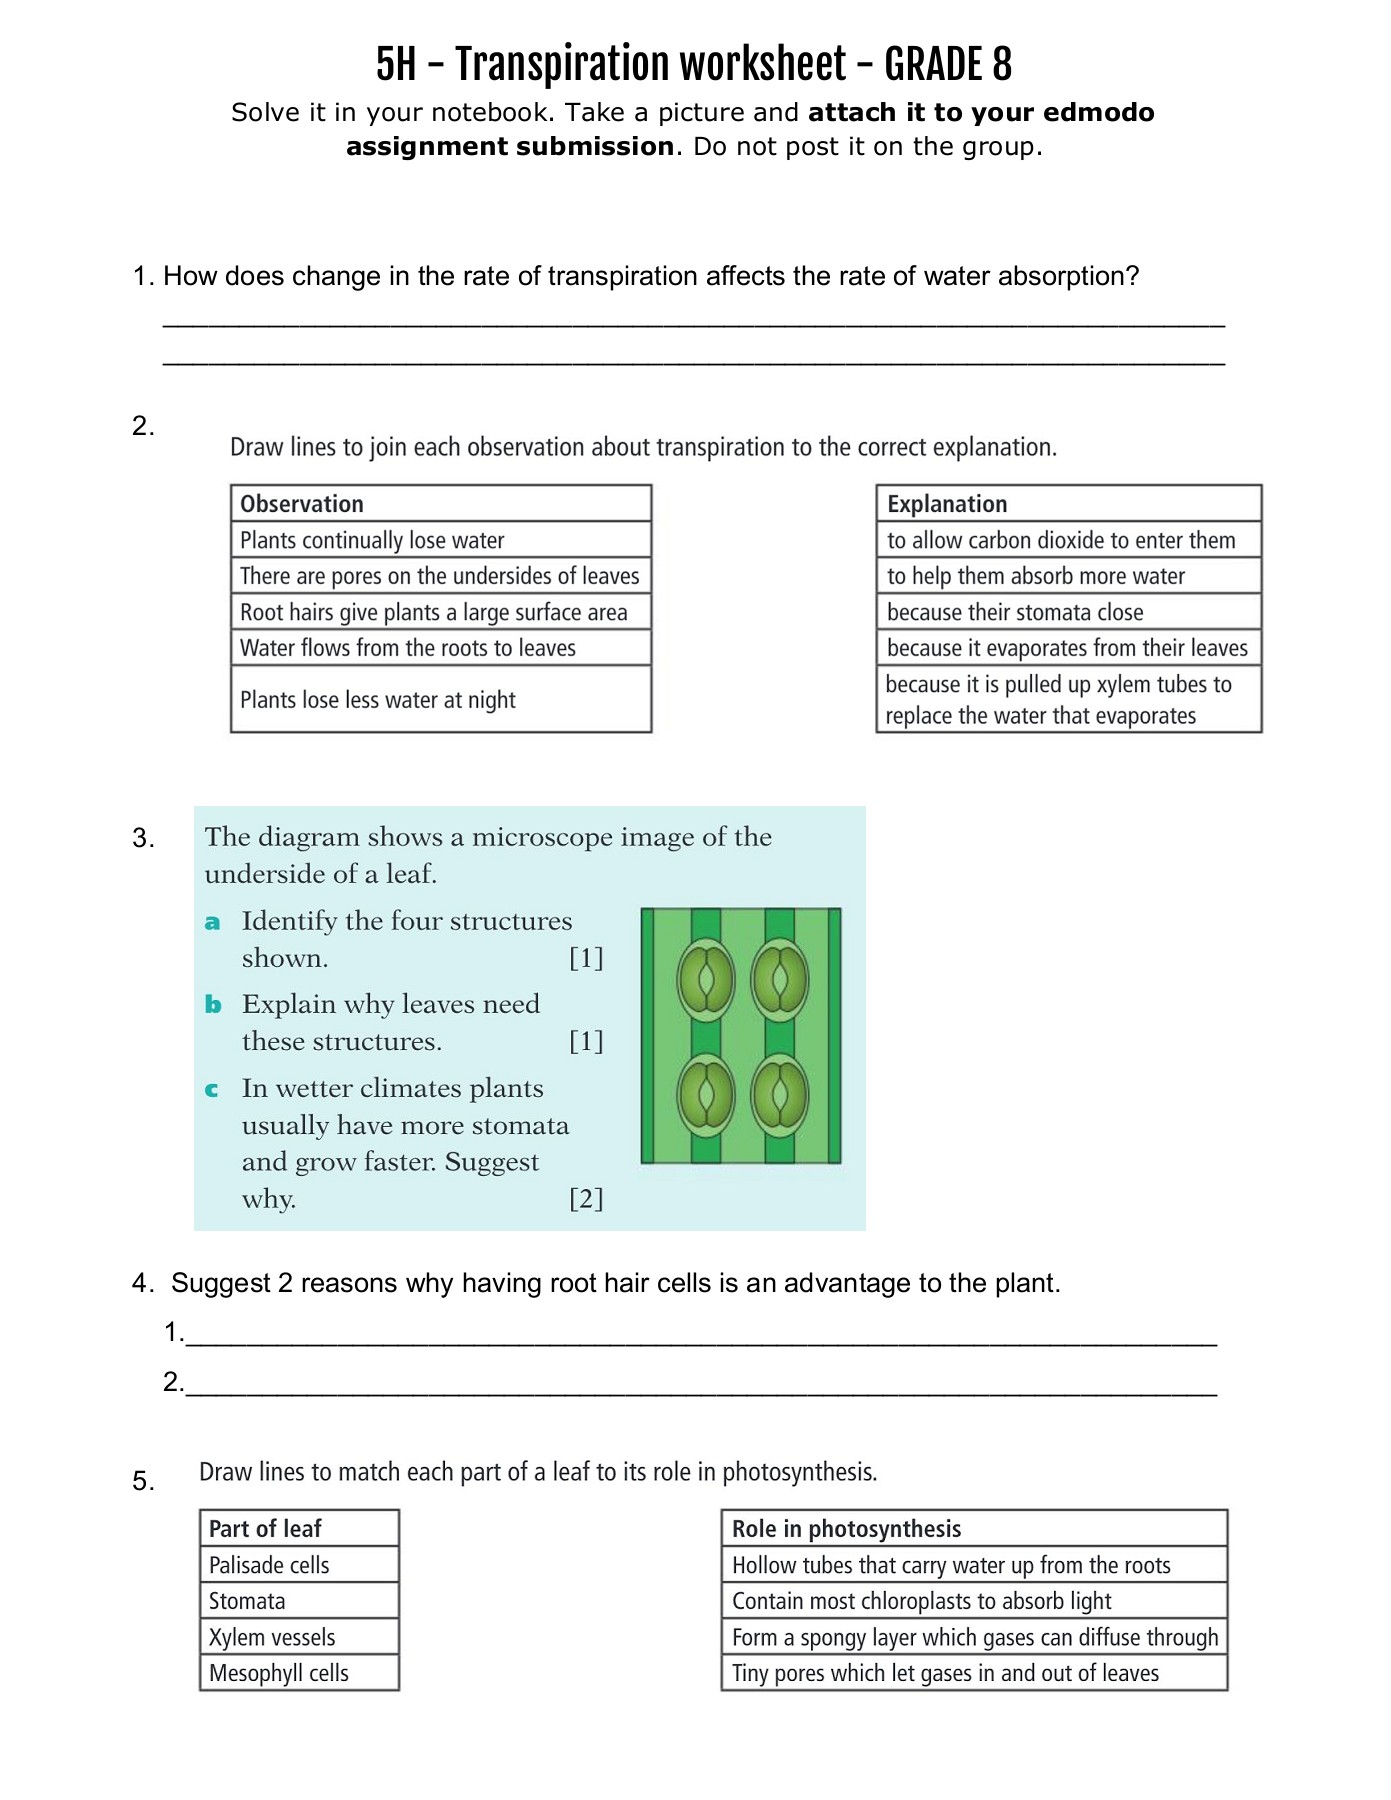 5H - Transpiration worksheet - GRADE 8 [ 1800 x 1391 Pixel ]